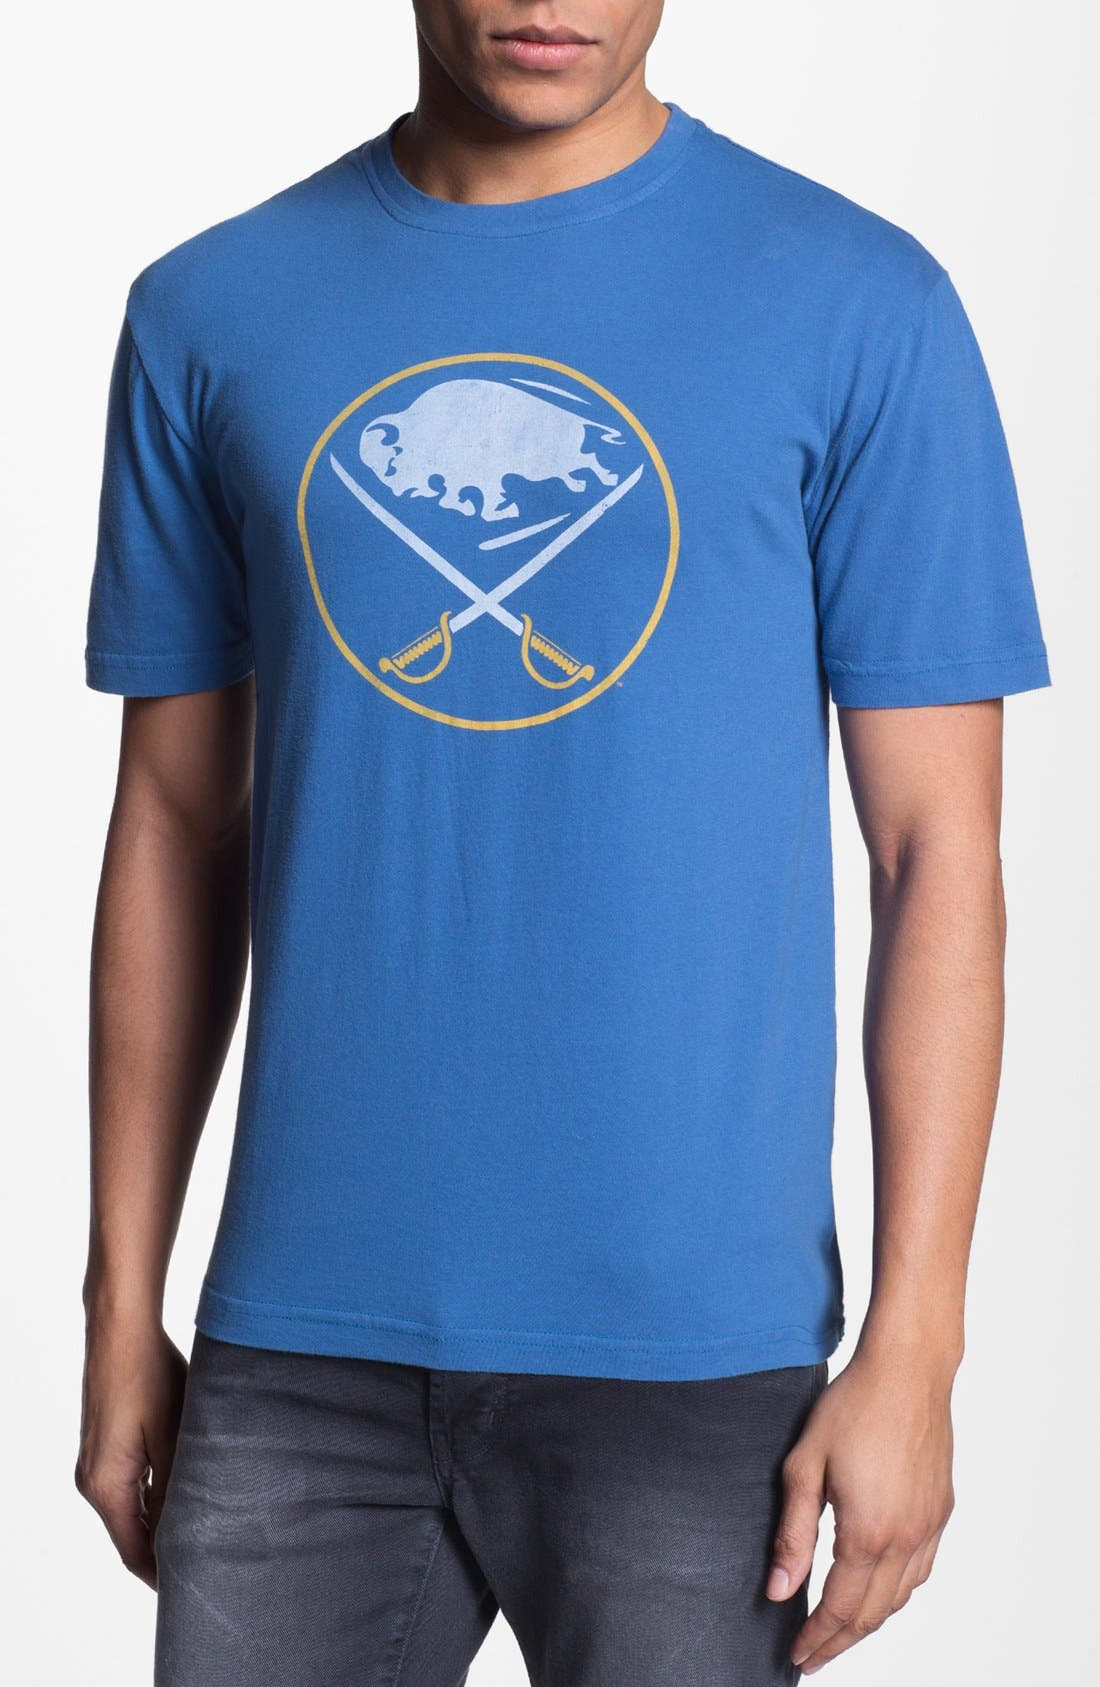 Alternate Image 1 Selected - Red Jacket 'Buffalo Sabres - Brass Tack' T-Shirt